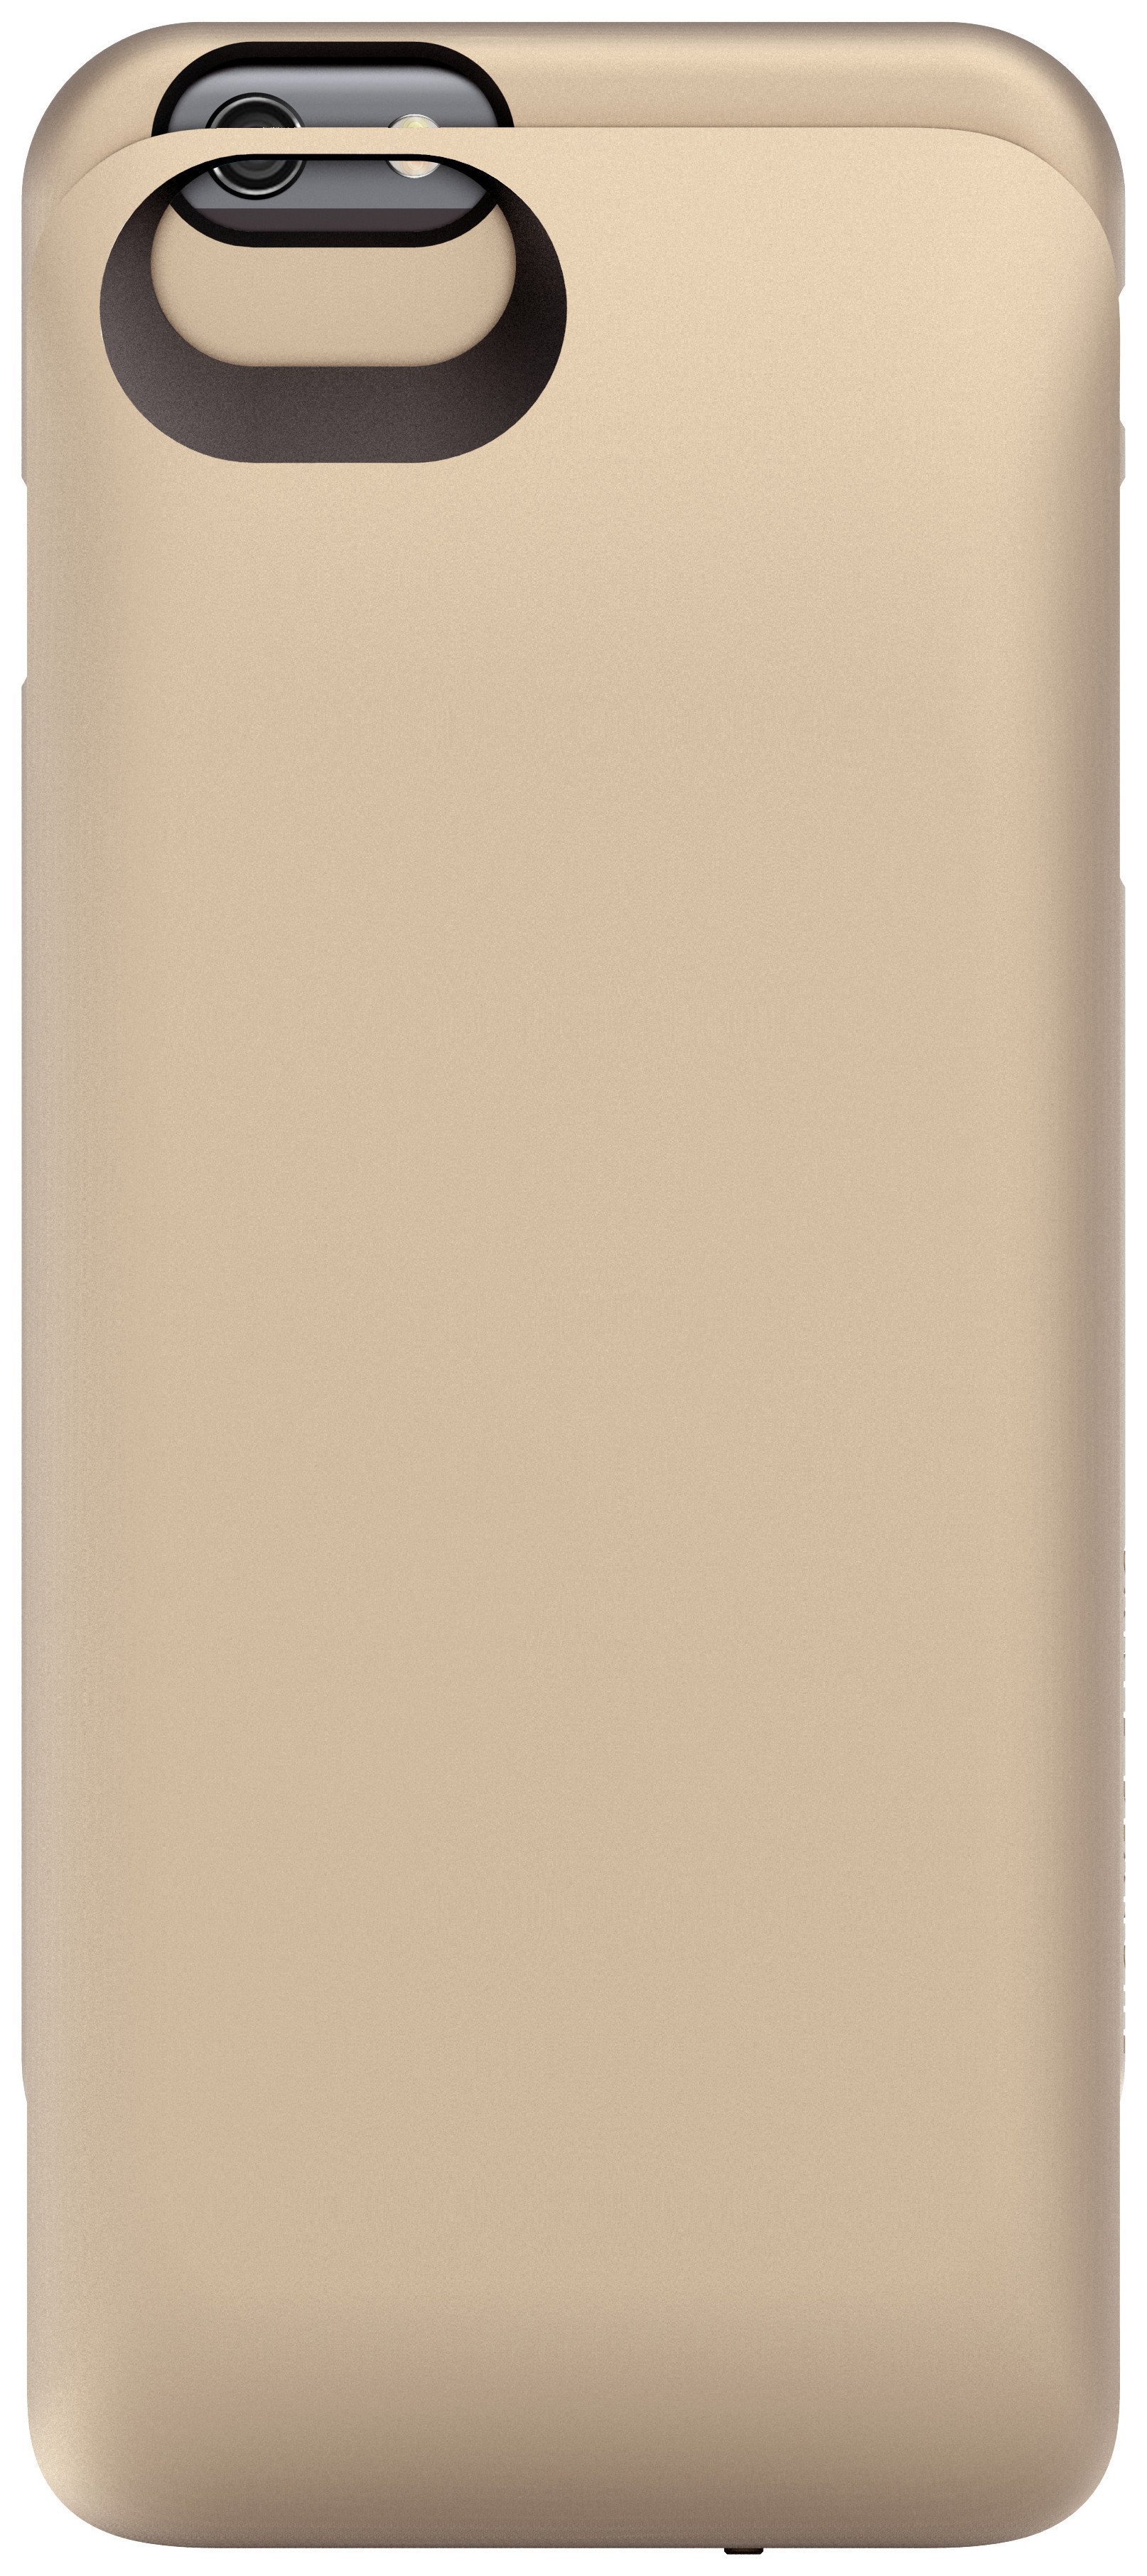 Image of BOOSTCASE 100% Extra Charge Charging Case - for - iPhone - 6 Gold